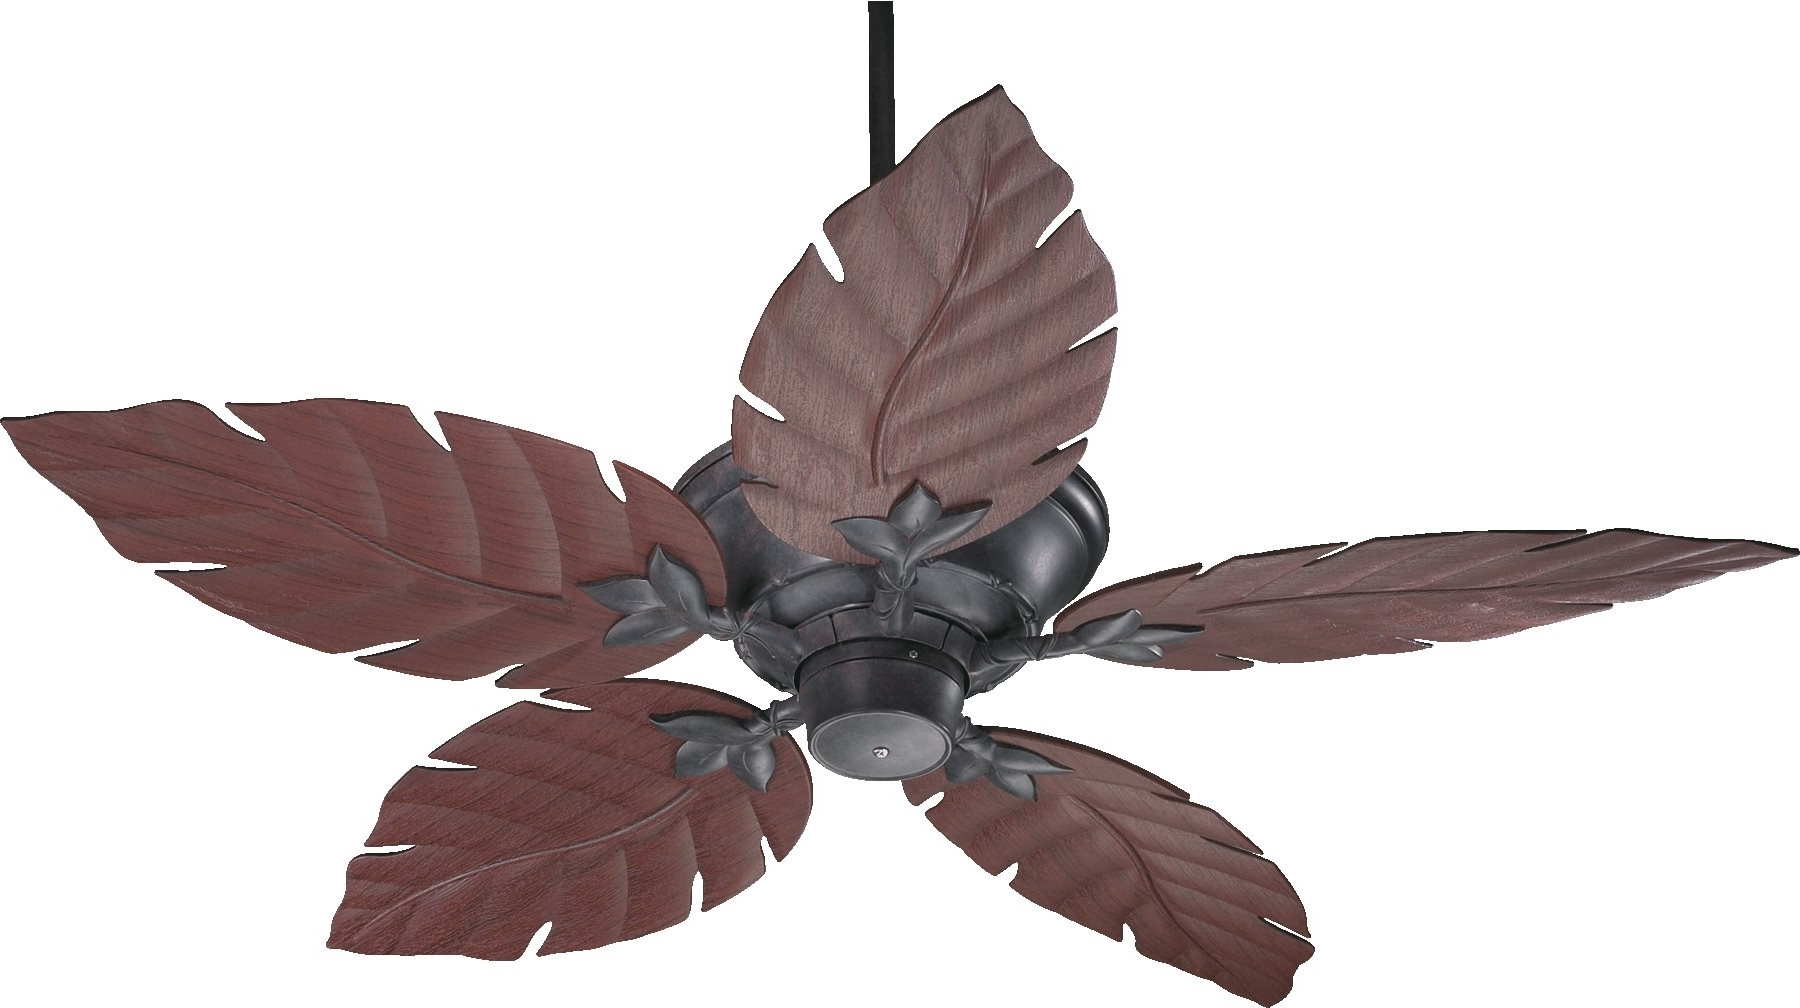 """Quorum Lighting 135525 Monaco 52"""" Patio Tropical Ceiling Fan Qr 135525 Intended For 2018 Quorum Outdoor Ceiling Fans (View 15 of 20)"""